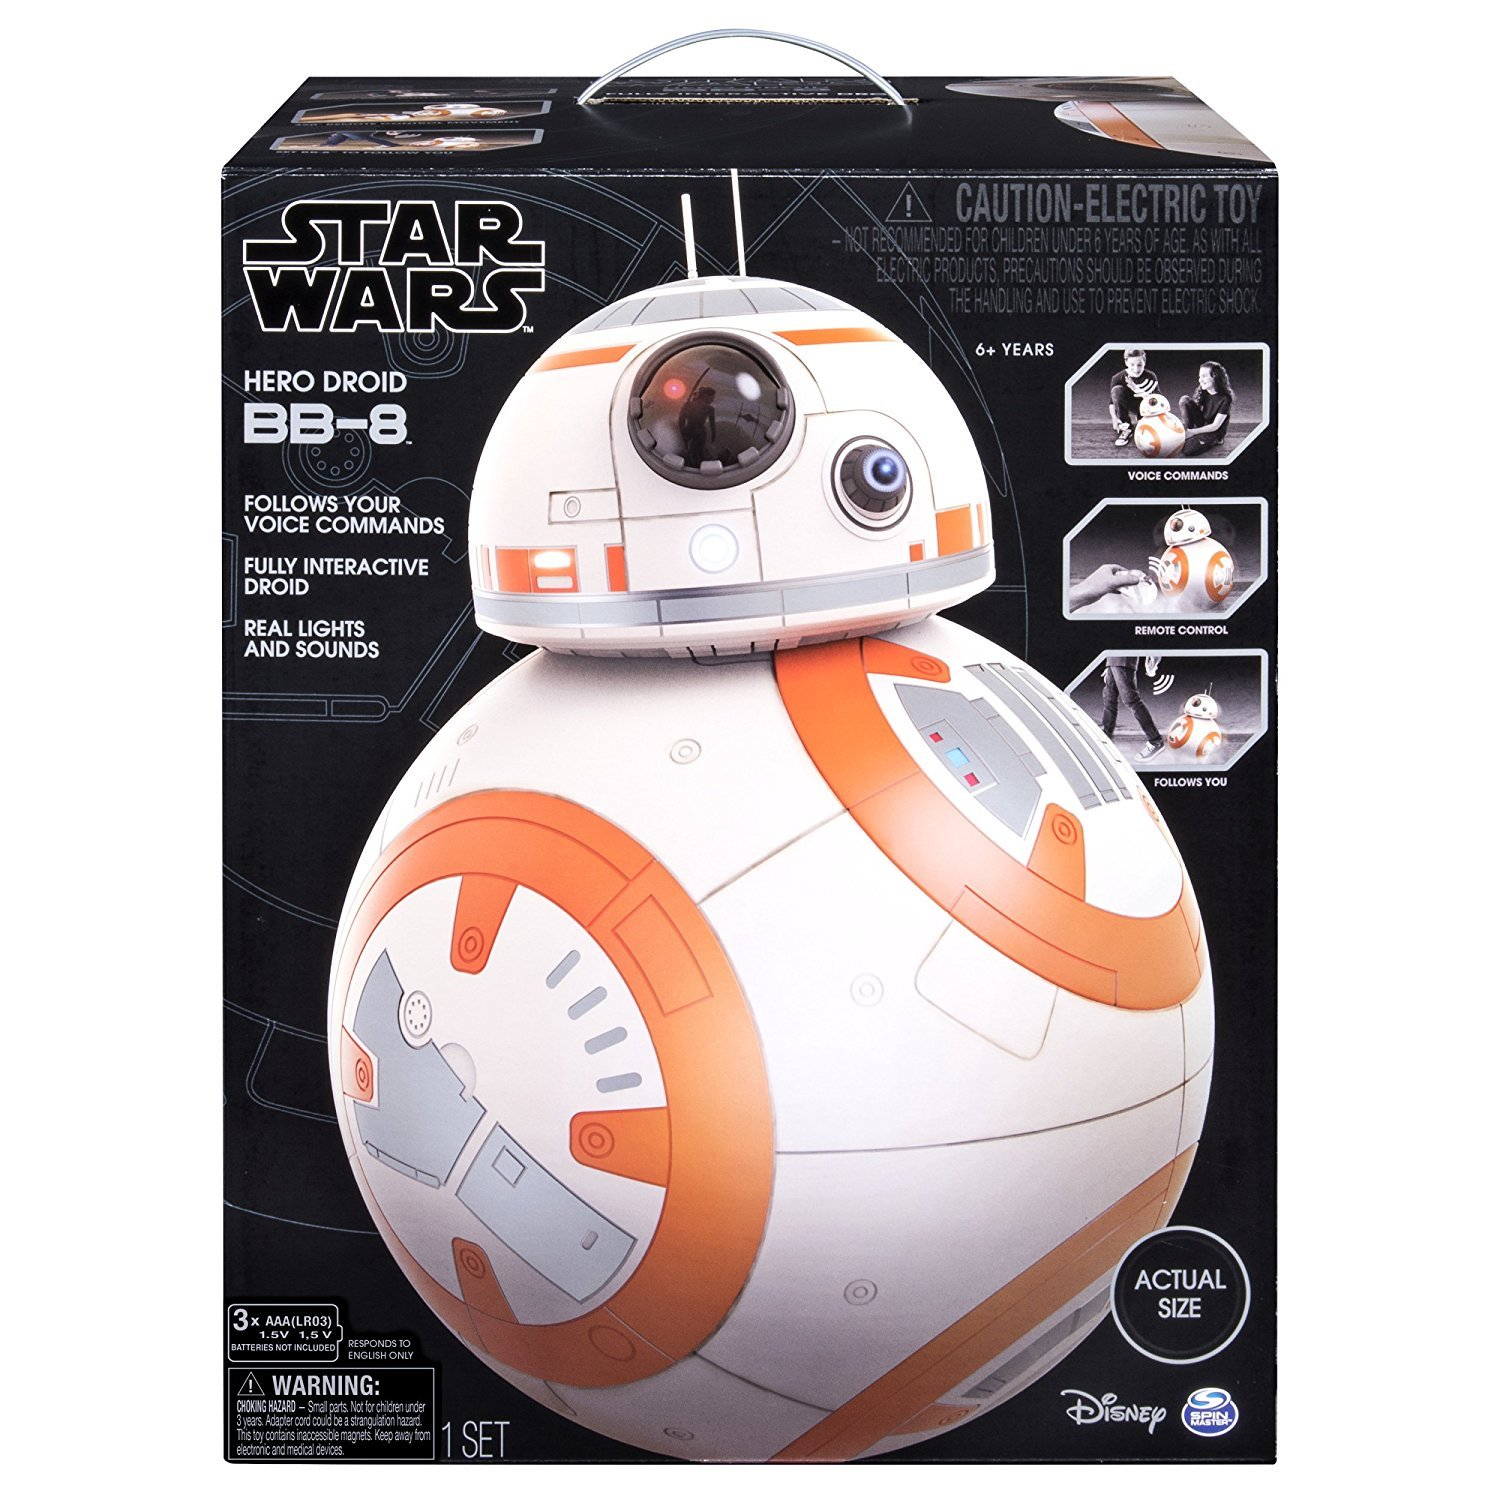 BB8 Star Wars Hero Droid Star Wars Hero Droid BB-8 Fully Interactive Droid by BB8 (Image #1)